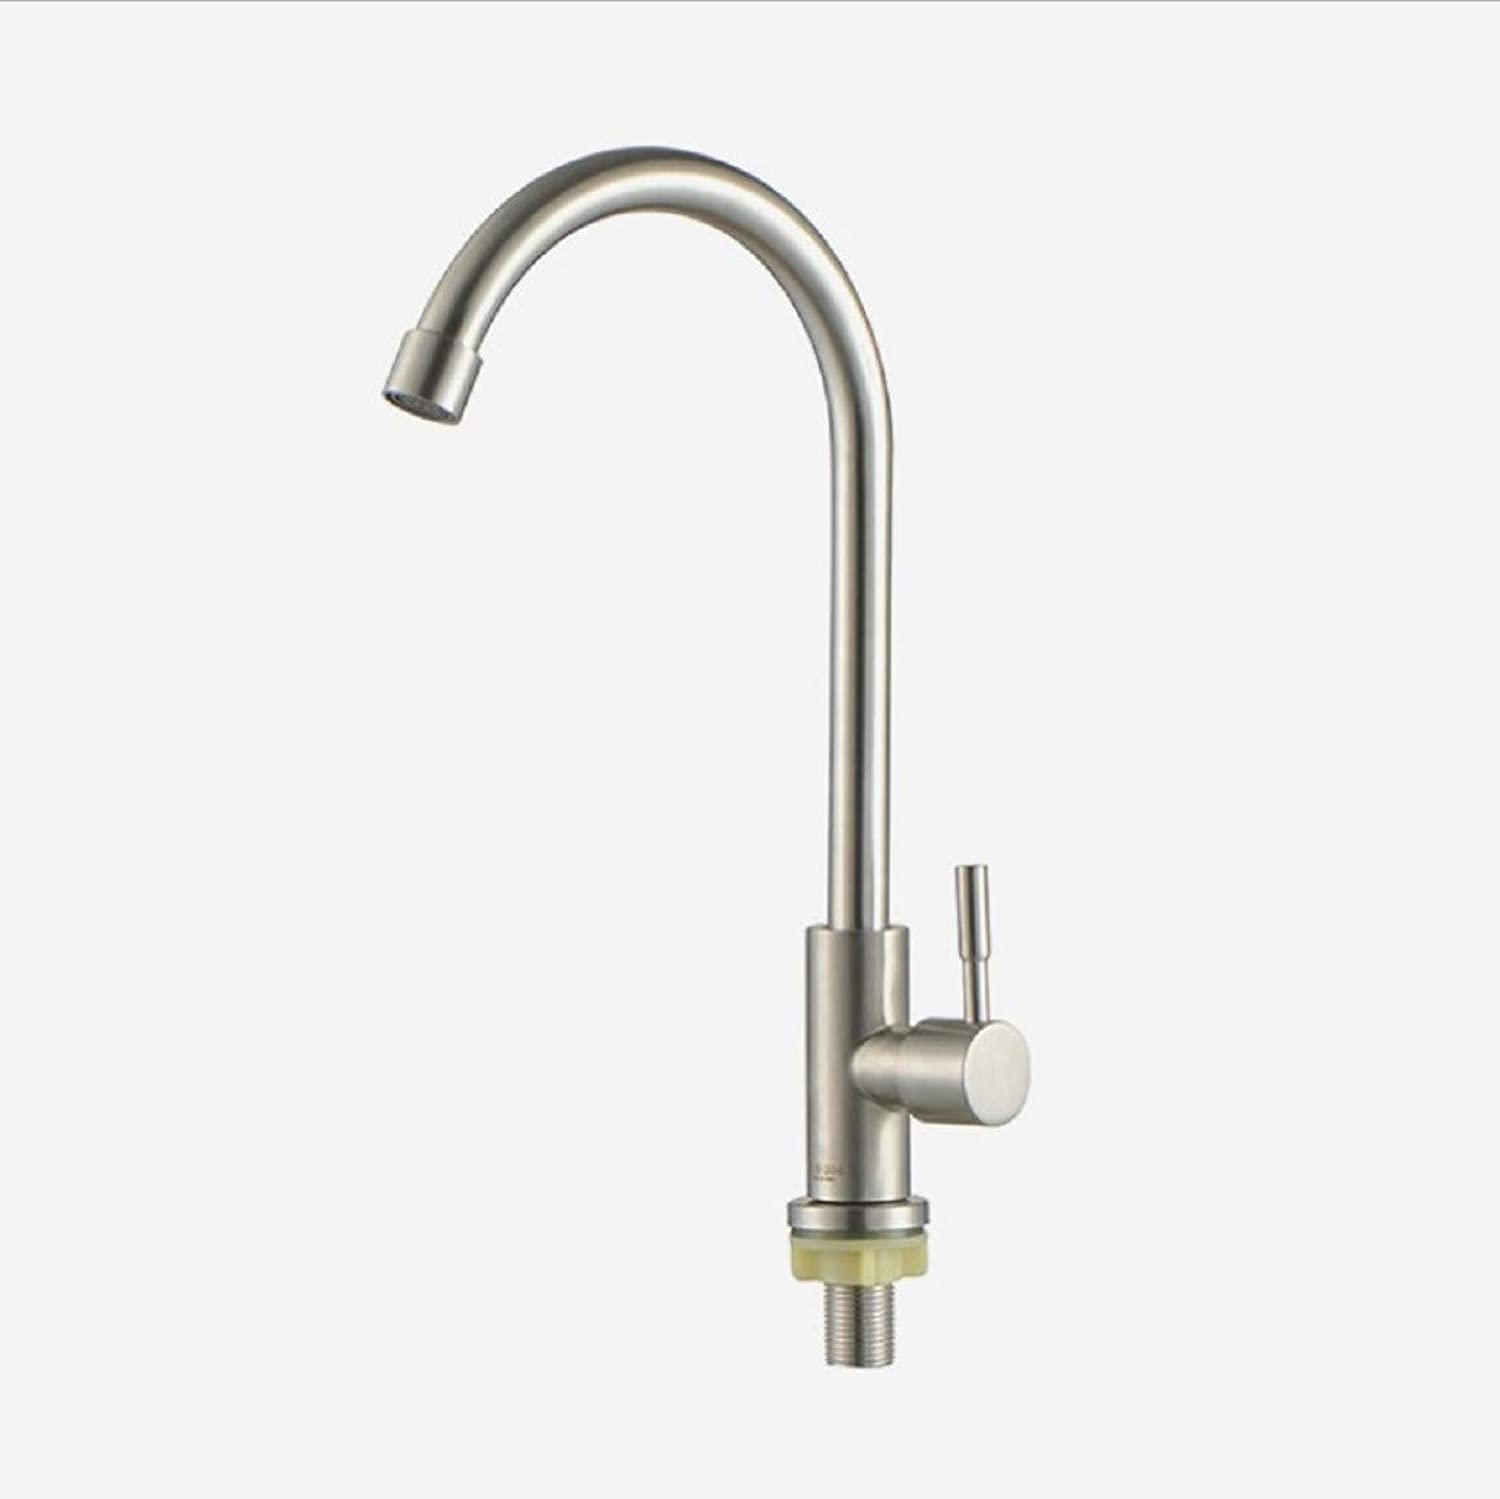 Kitchen Tap Hot and Cold Single Cooling redary Household Washing Basin Lead-Free Balcony Faucet Kitchen Taps Kitchen Sink Mixer Taps Basin Tap